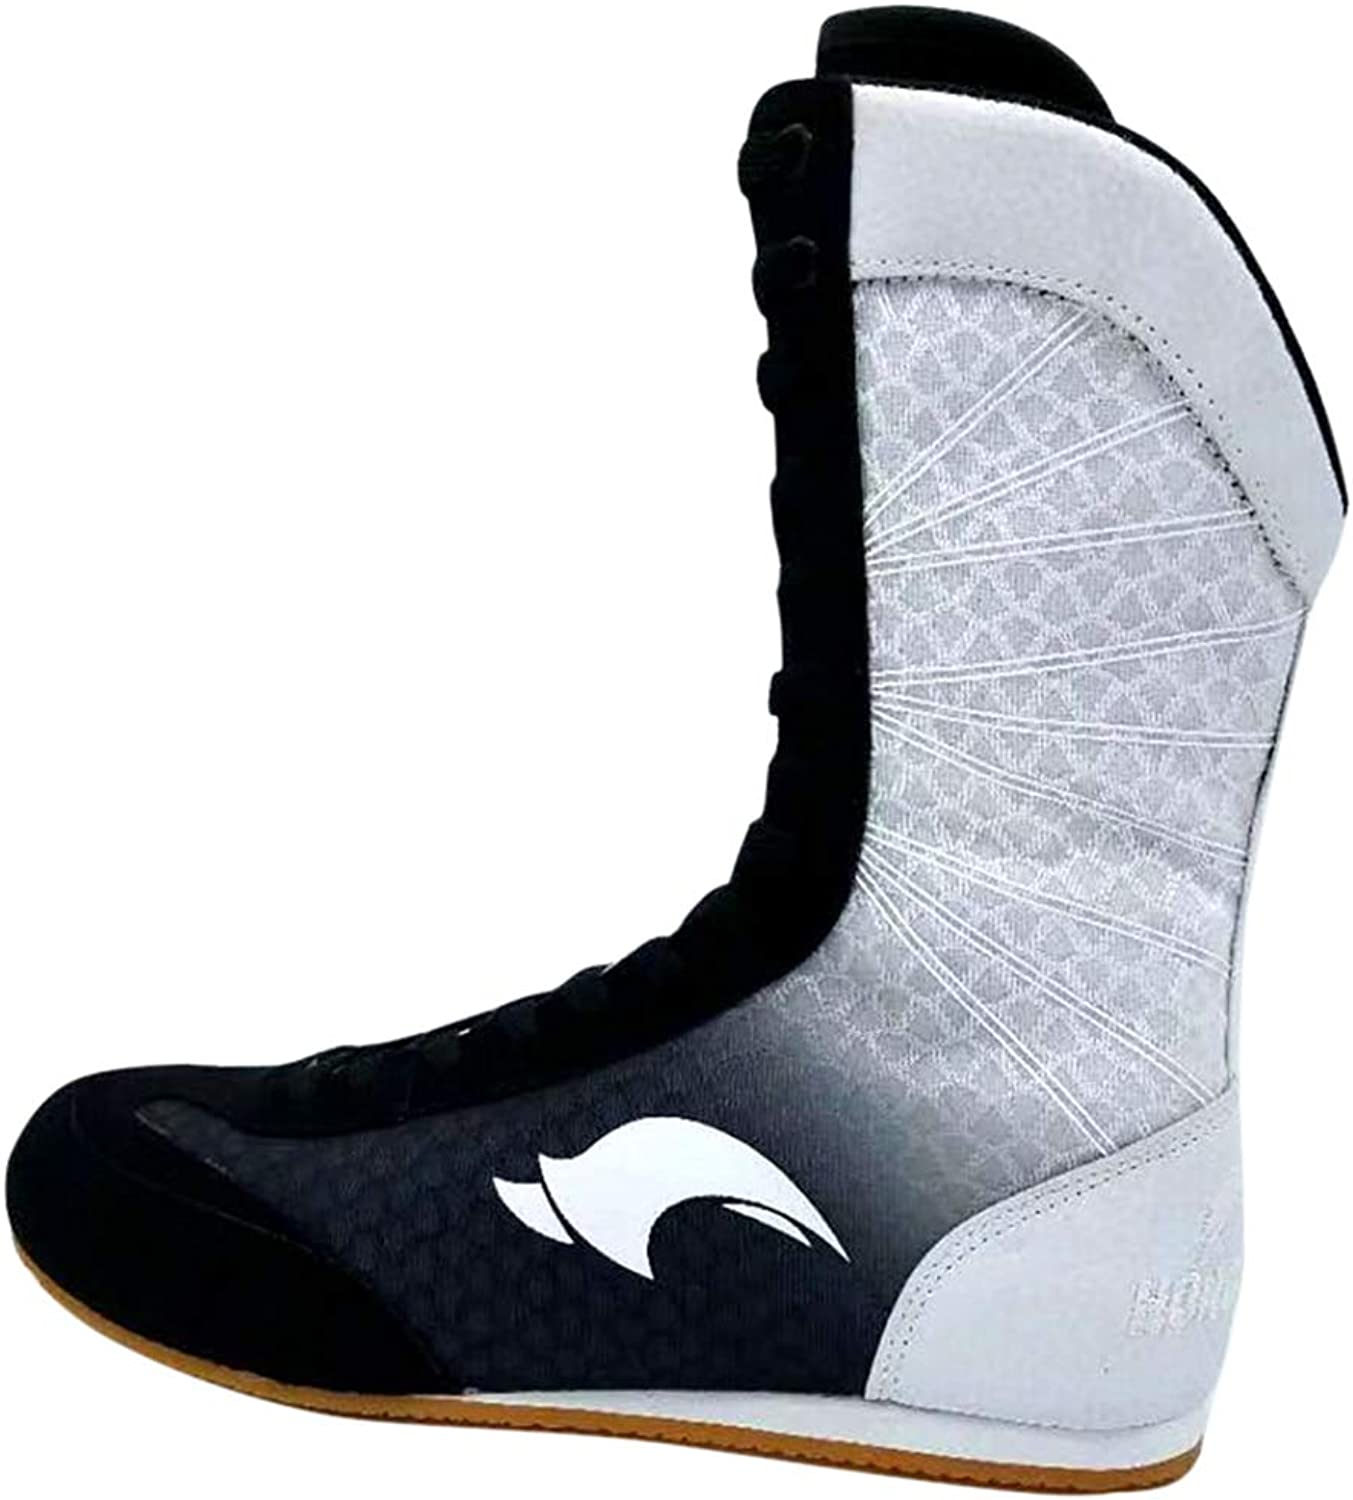 High Top Boxing shoes for Men Women Kids, Breathable Boxer Boots